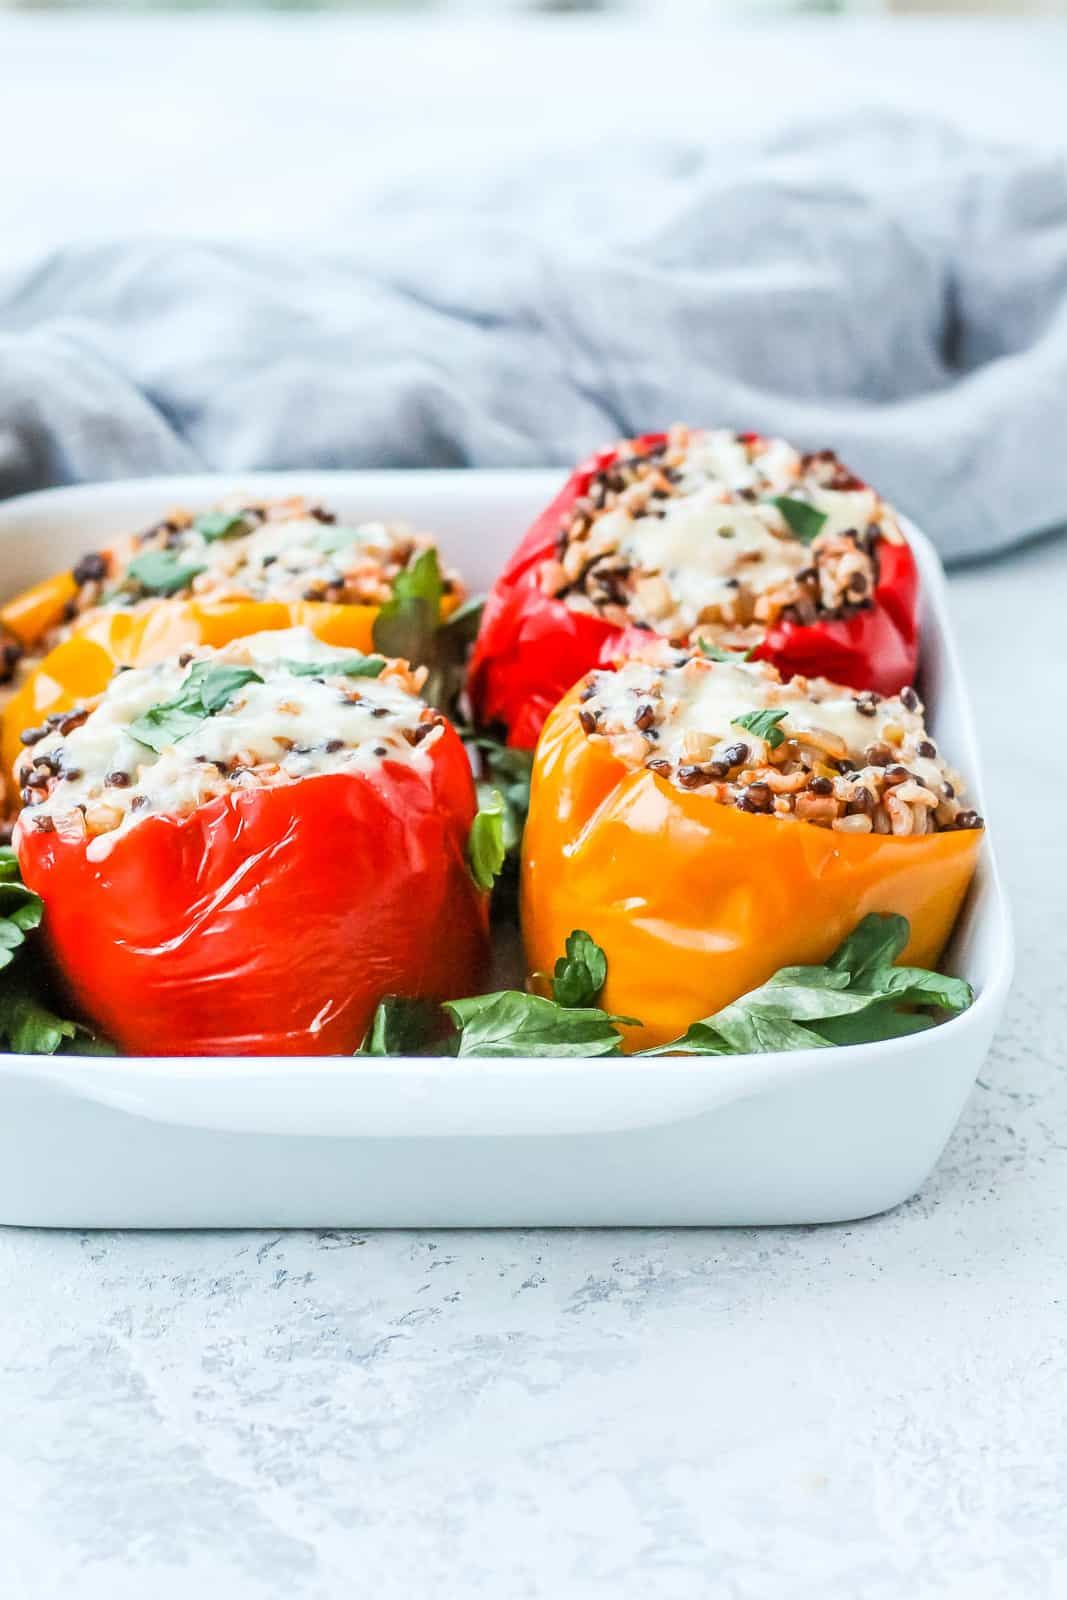 red and yellow vegetarian stuffed peppers topped with cheese in a white casserole dish